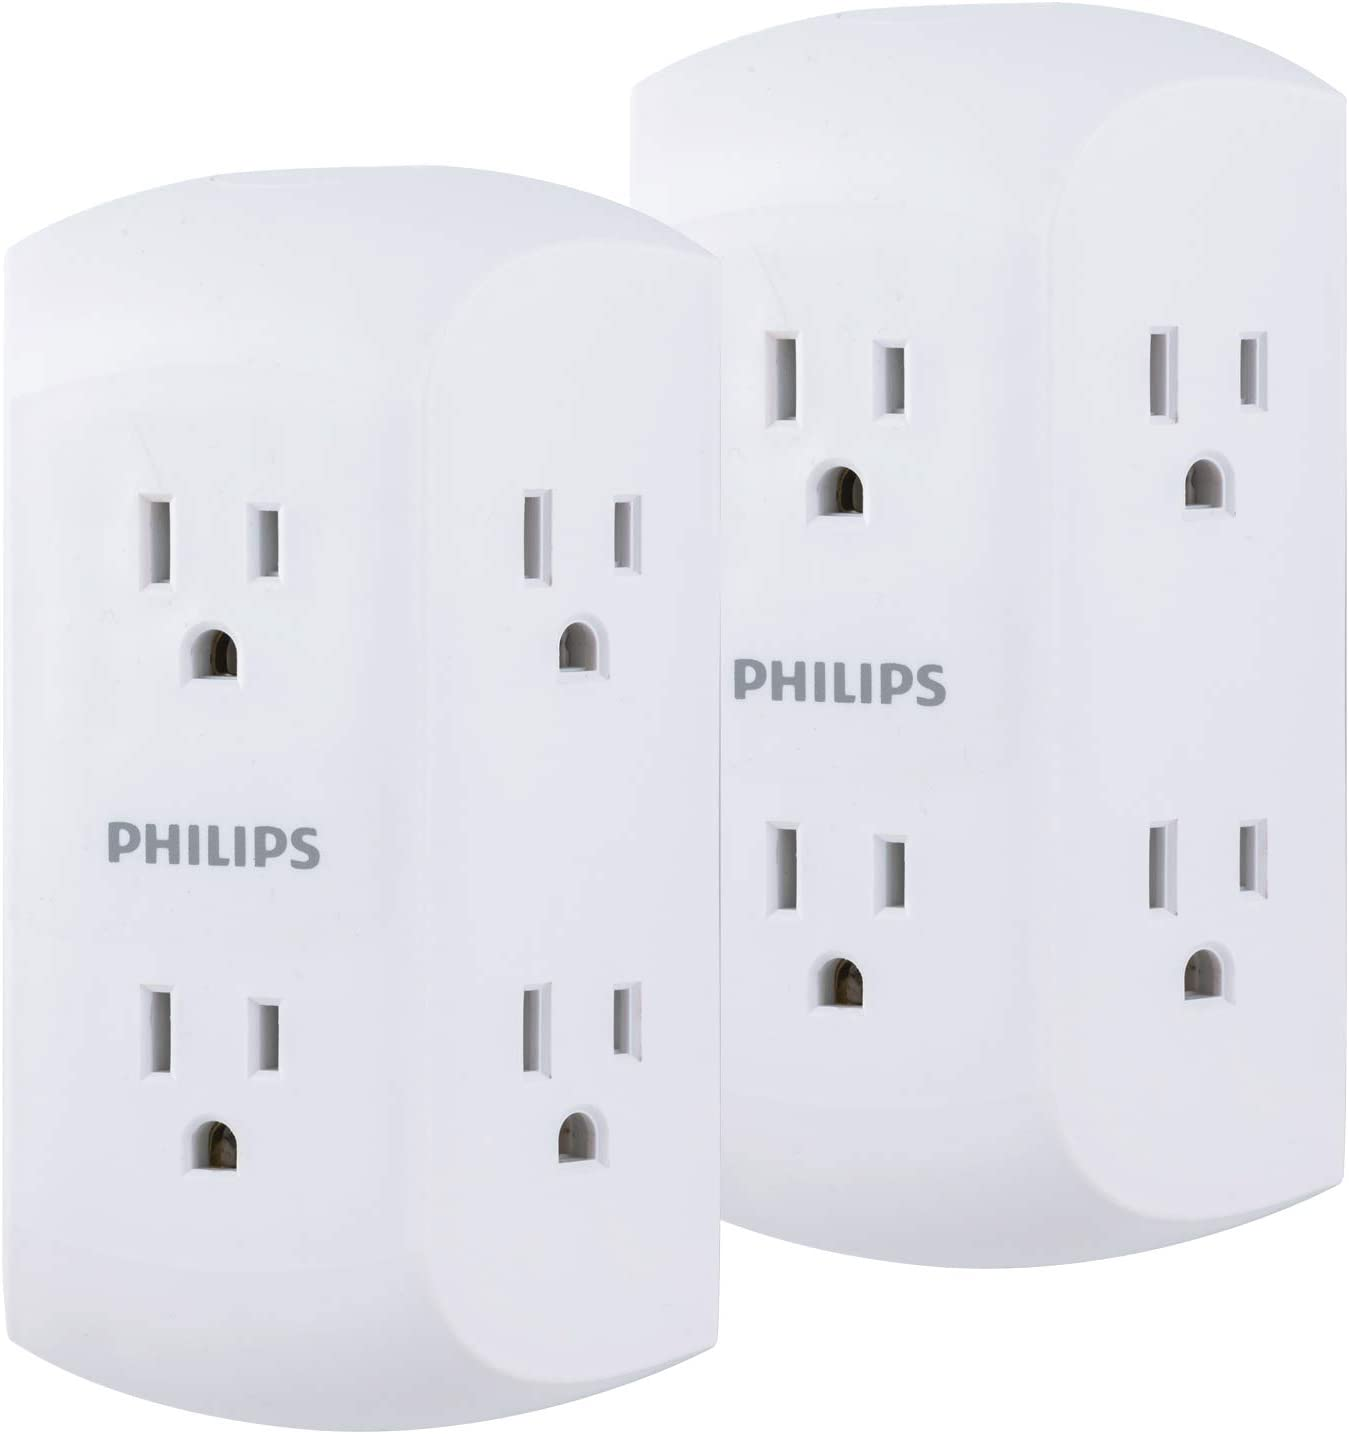 Philips 6-Outlet Wall Plug Power Strip, 2 Pack, Extra Wide Adapter Spaced, 3 Prong, SPS1742WA/37, White